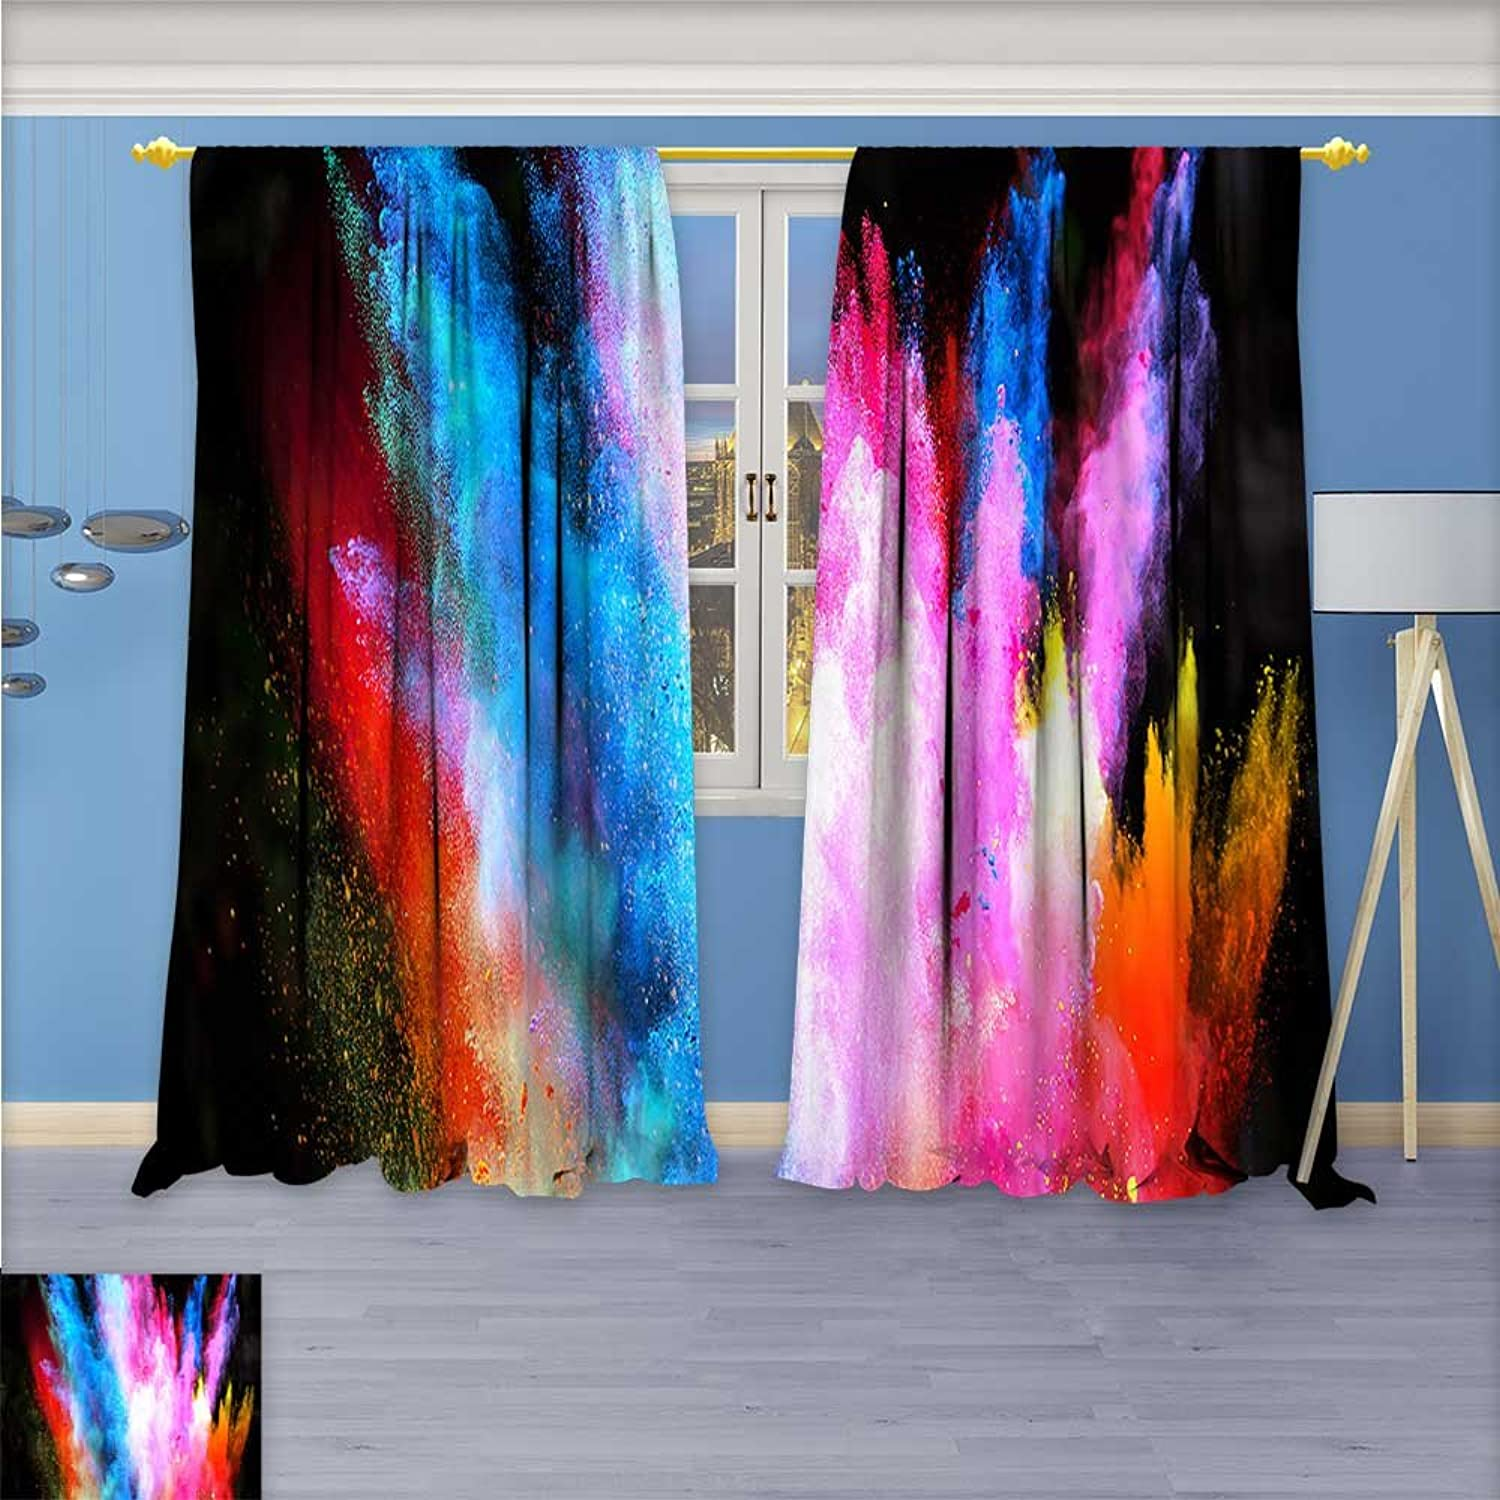 Aolankaili Printed Pair (2 Panels) Room Darkening Thermal Insulated colorful Life Top Pattern Curtains 120W x 72L inch